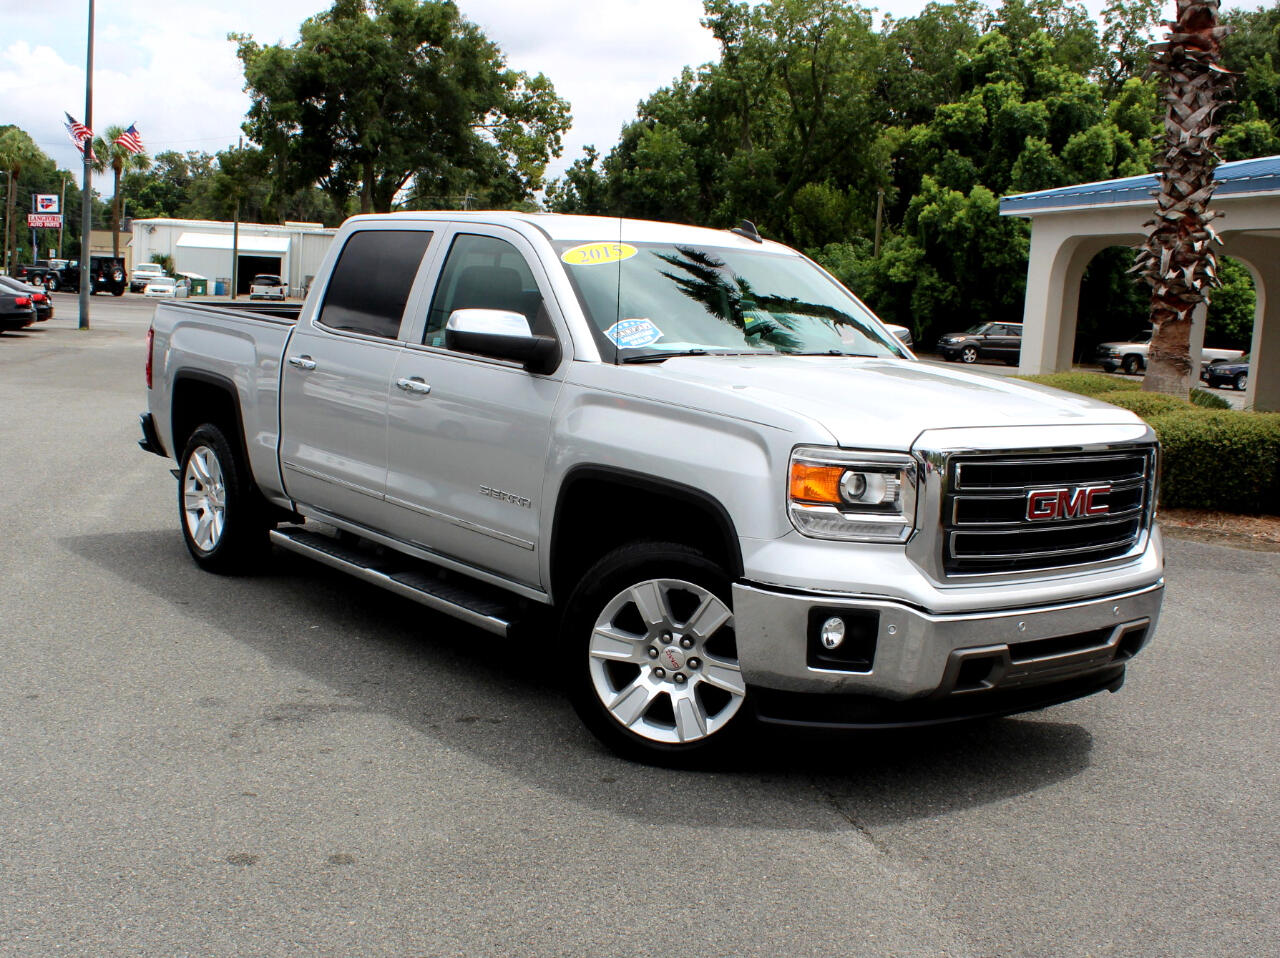 2015 GMC Sierra 1500 SLT Crew Cab Long Box 2WD